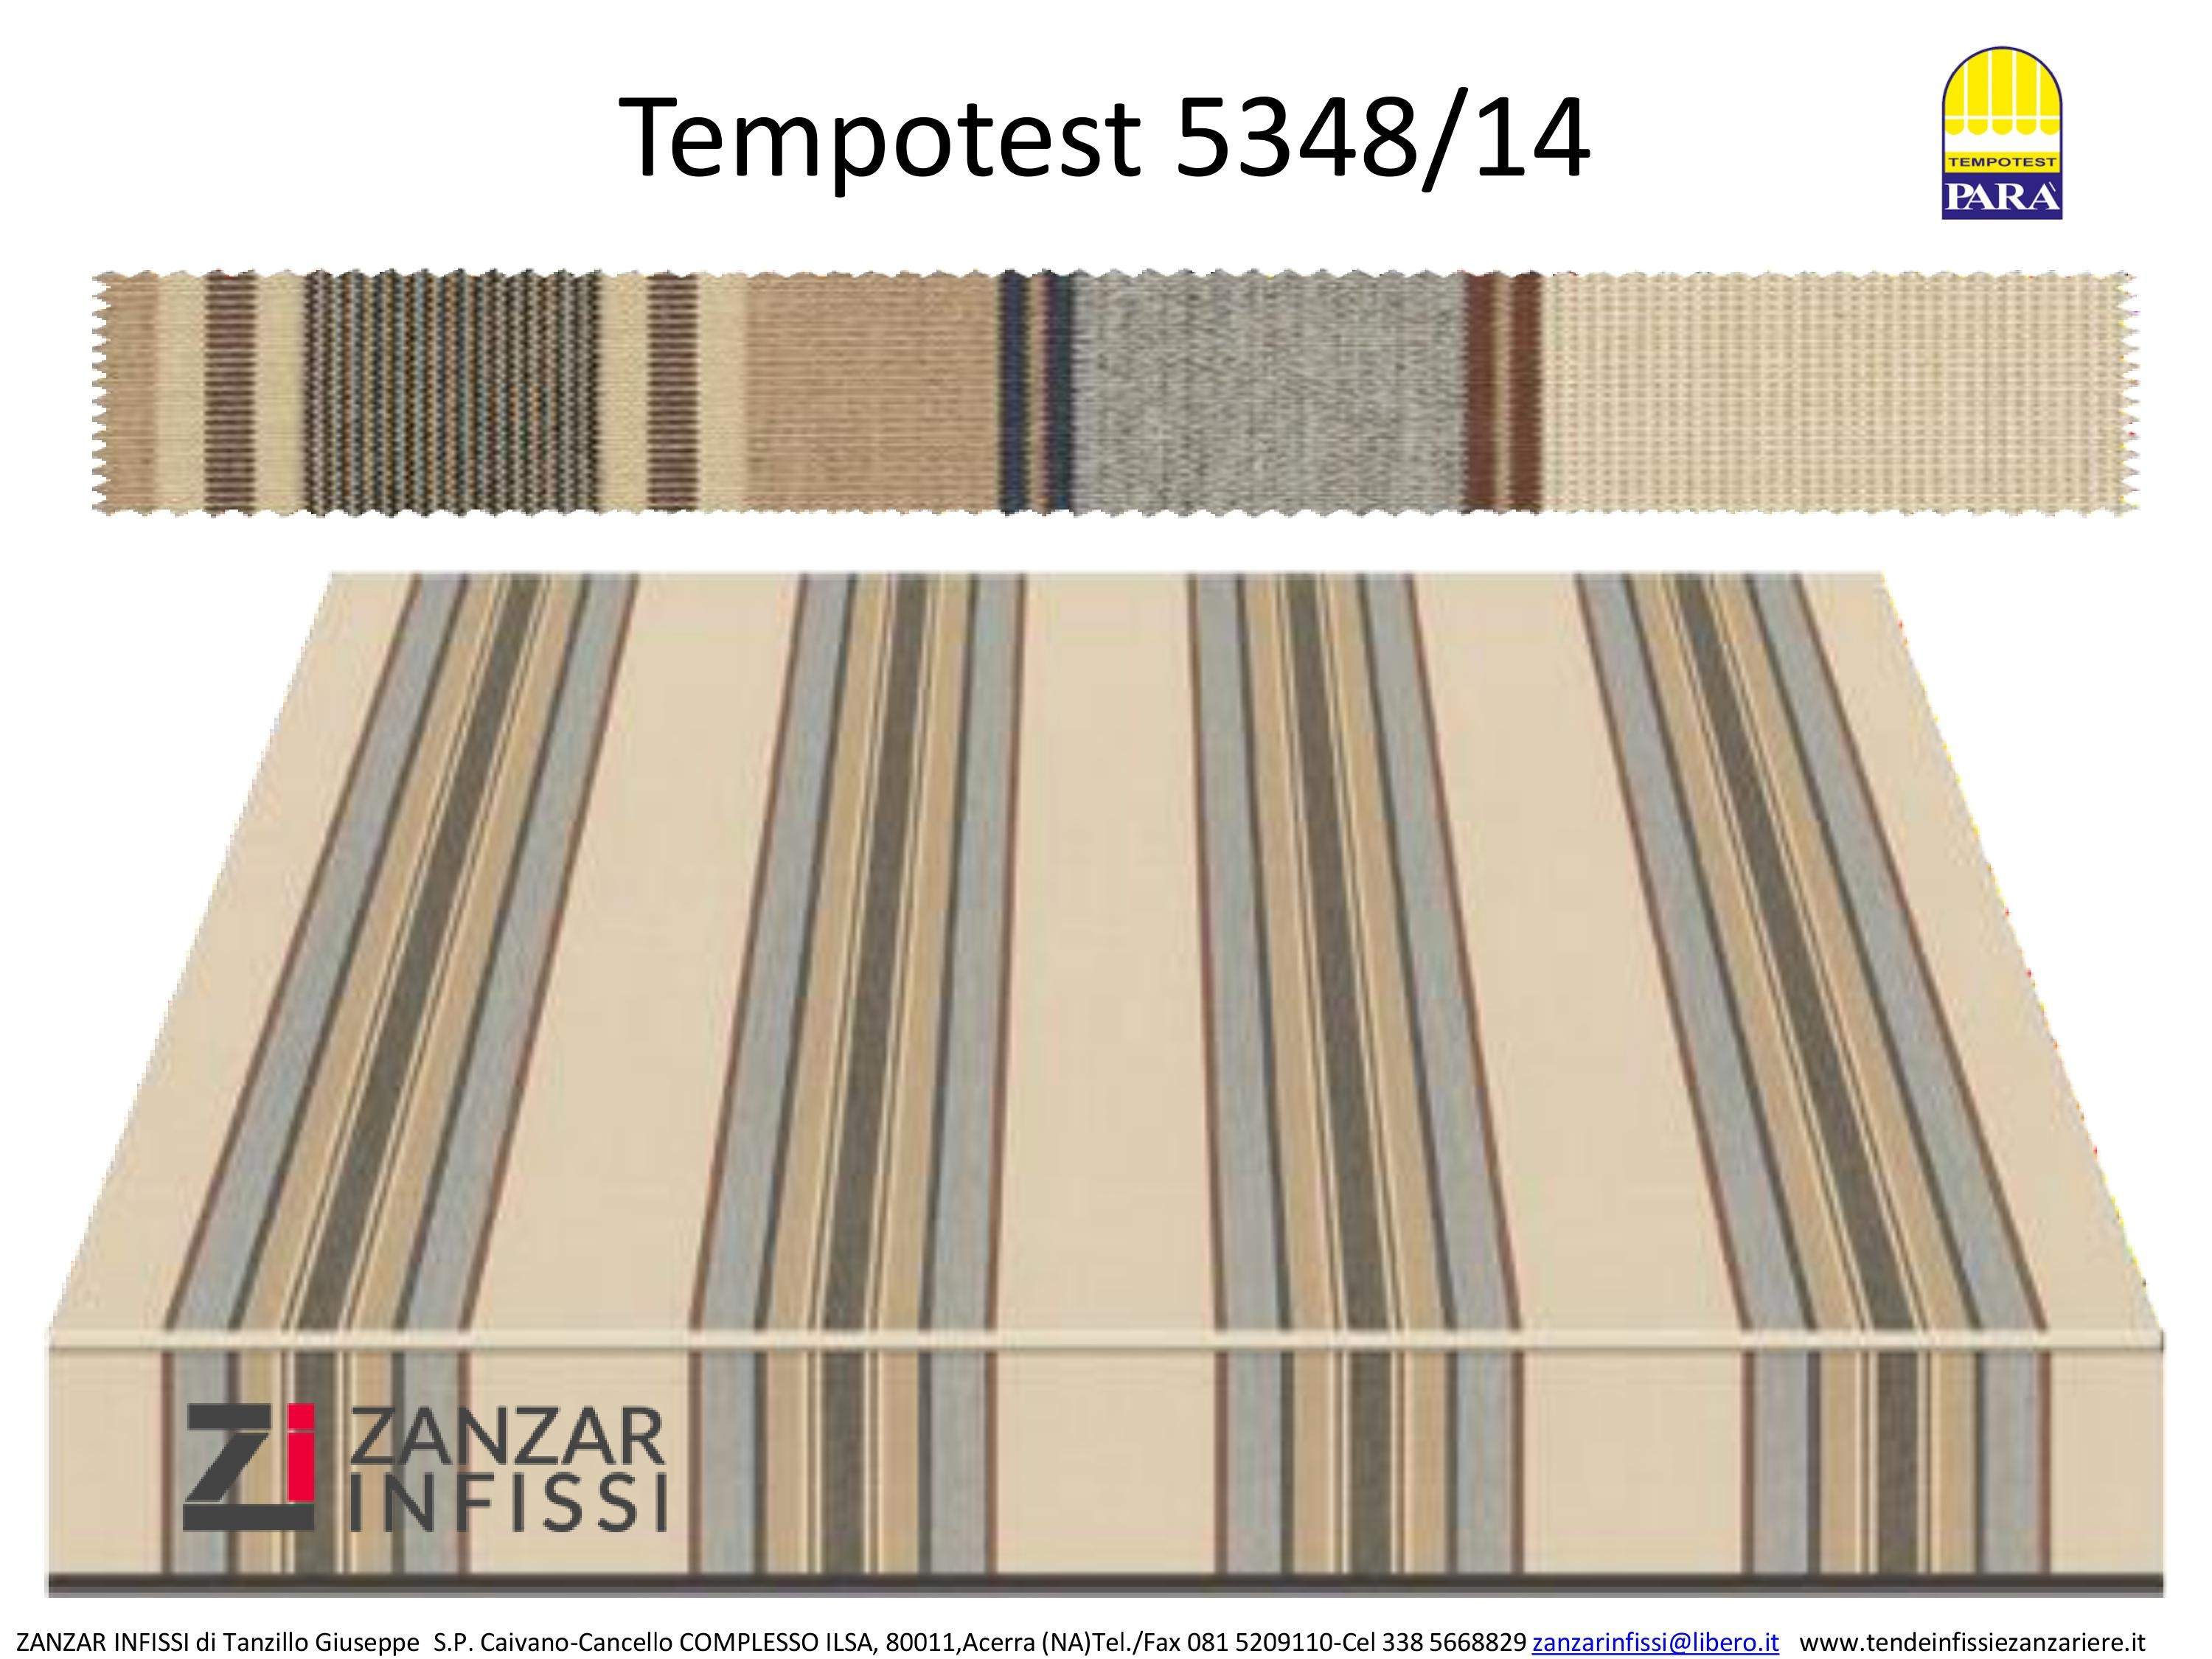 Tempotest 5348/14